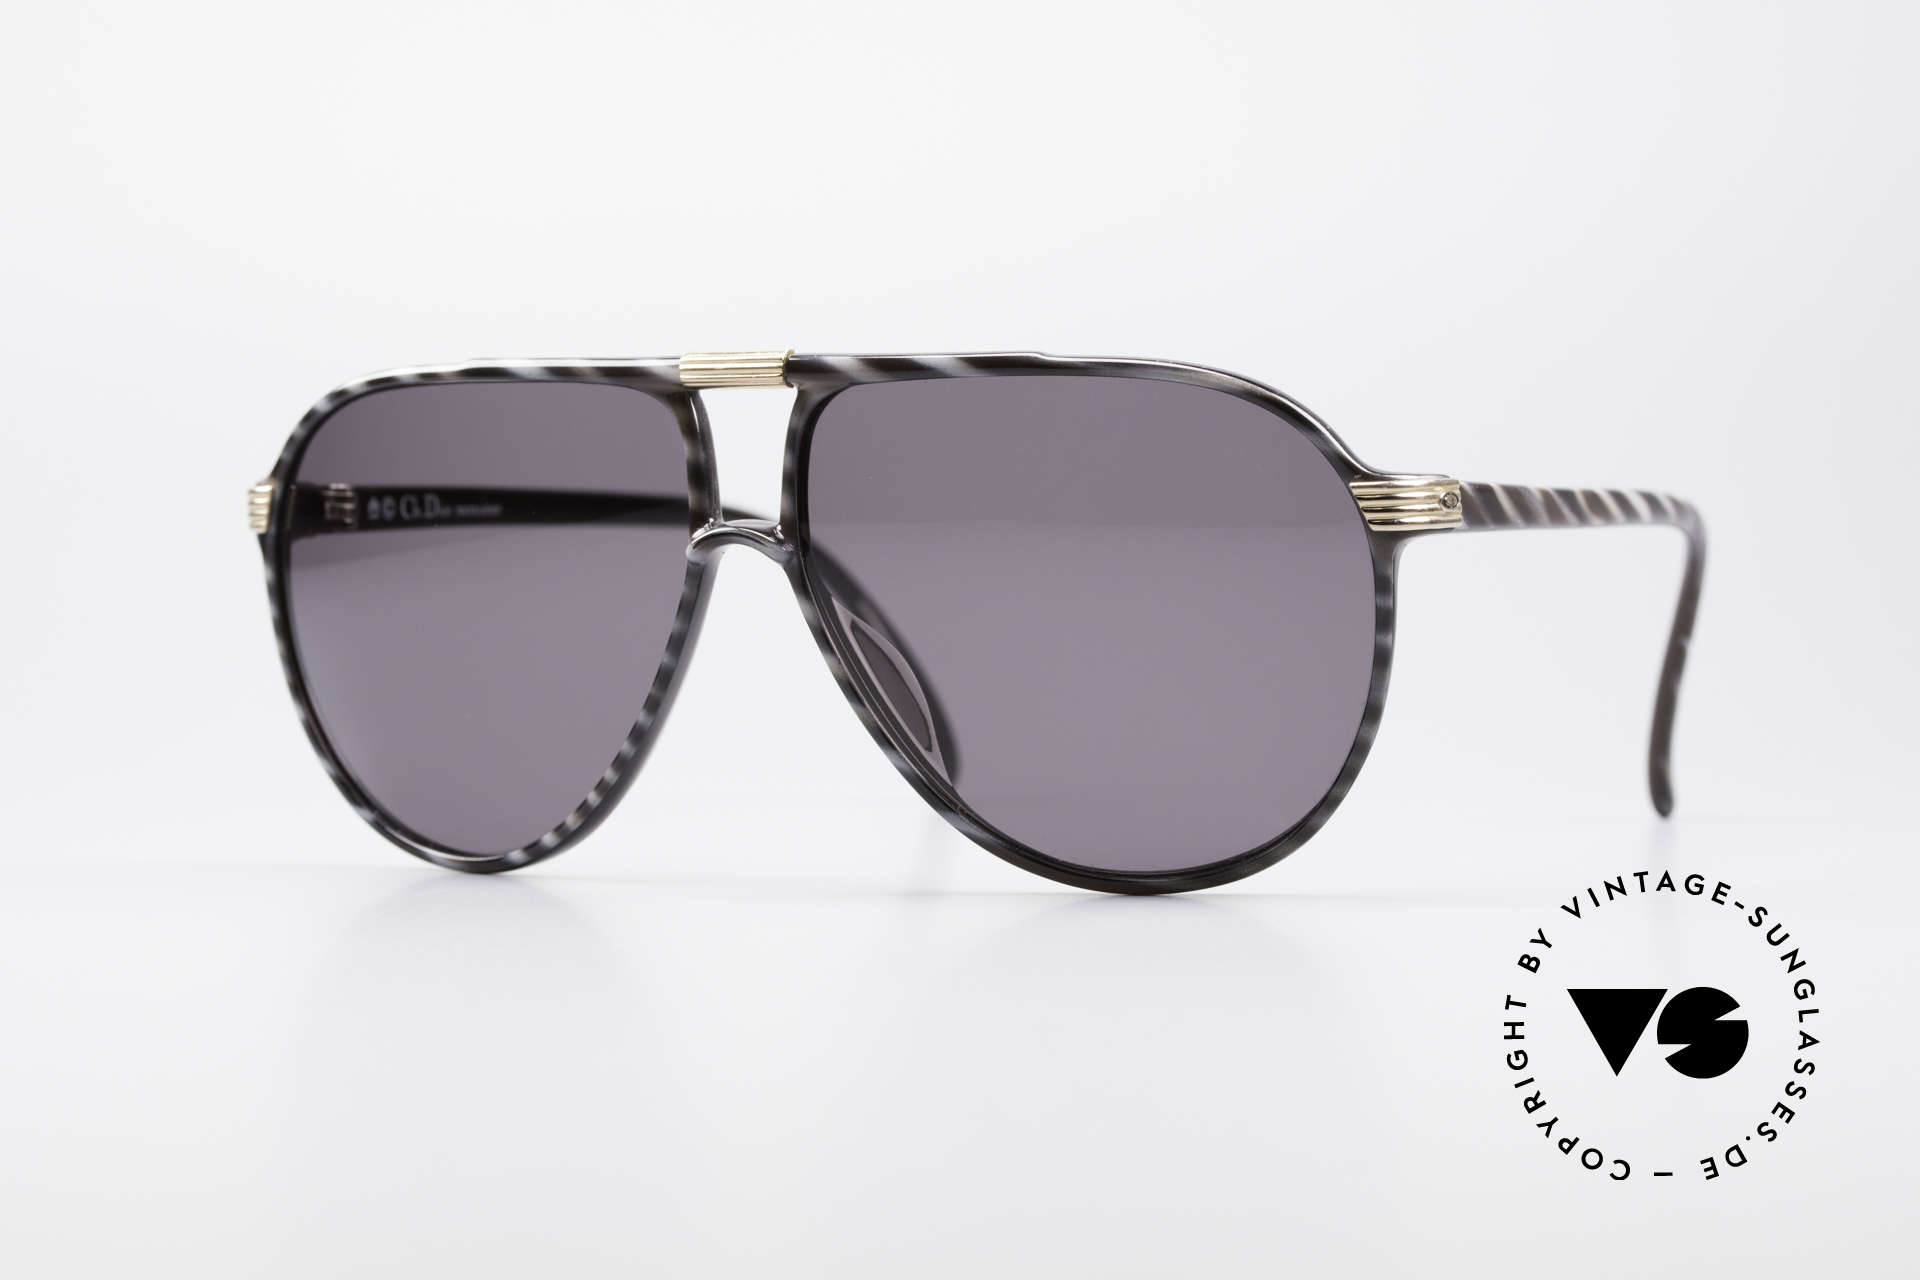 Christian Dior 2300 80's Monsieur Sunglasses, orig. Christian Dior vintage sunglasses from 1985, Made for Men